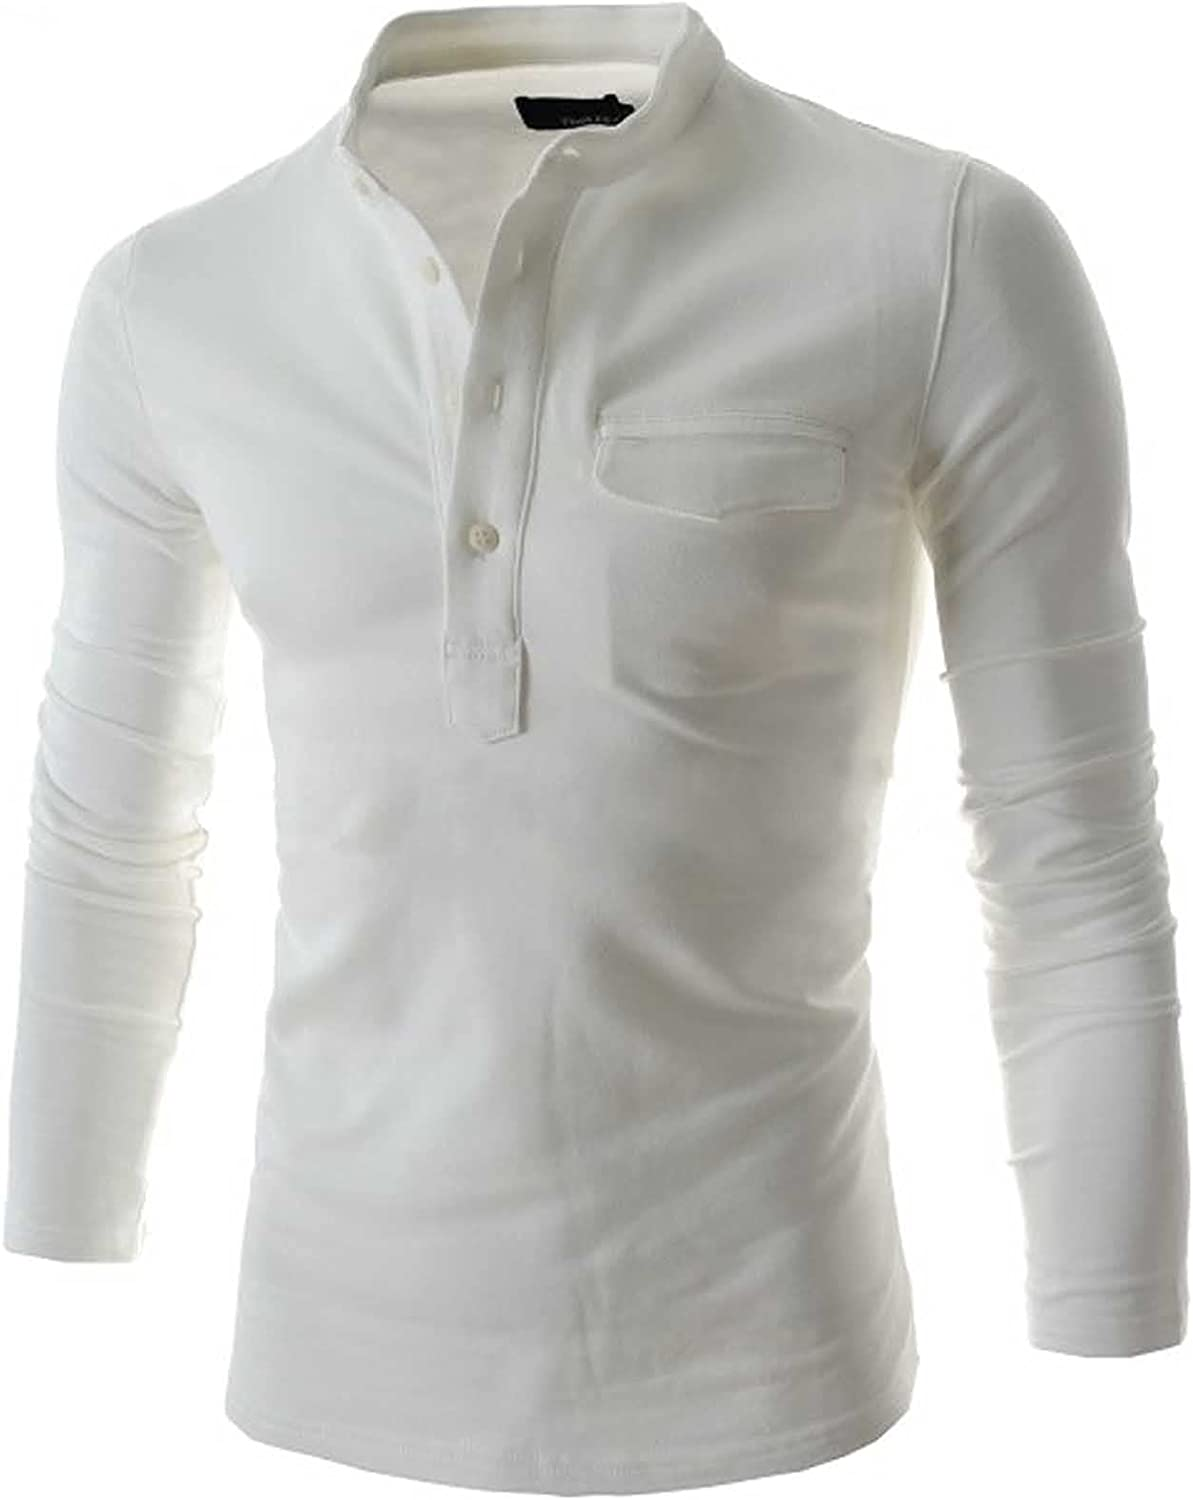 FUNEY Men's Classic Long Sleeve Button Up Collar Henley Shirts Casual V Neck Slim Fit Cotton Tshirts Tops with Pockets